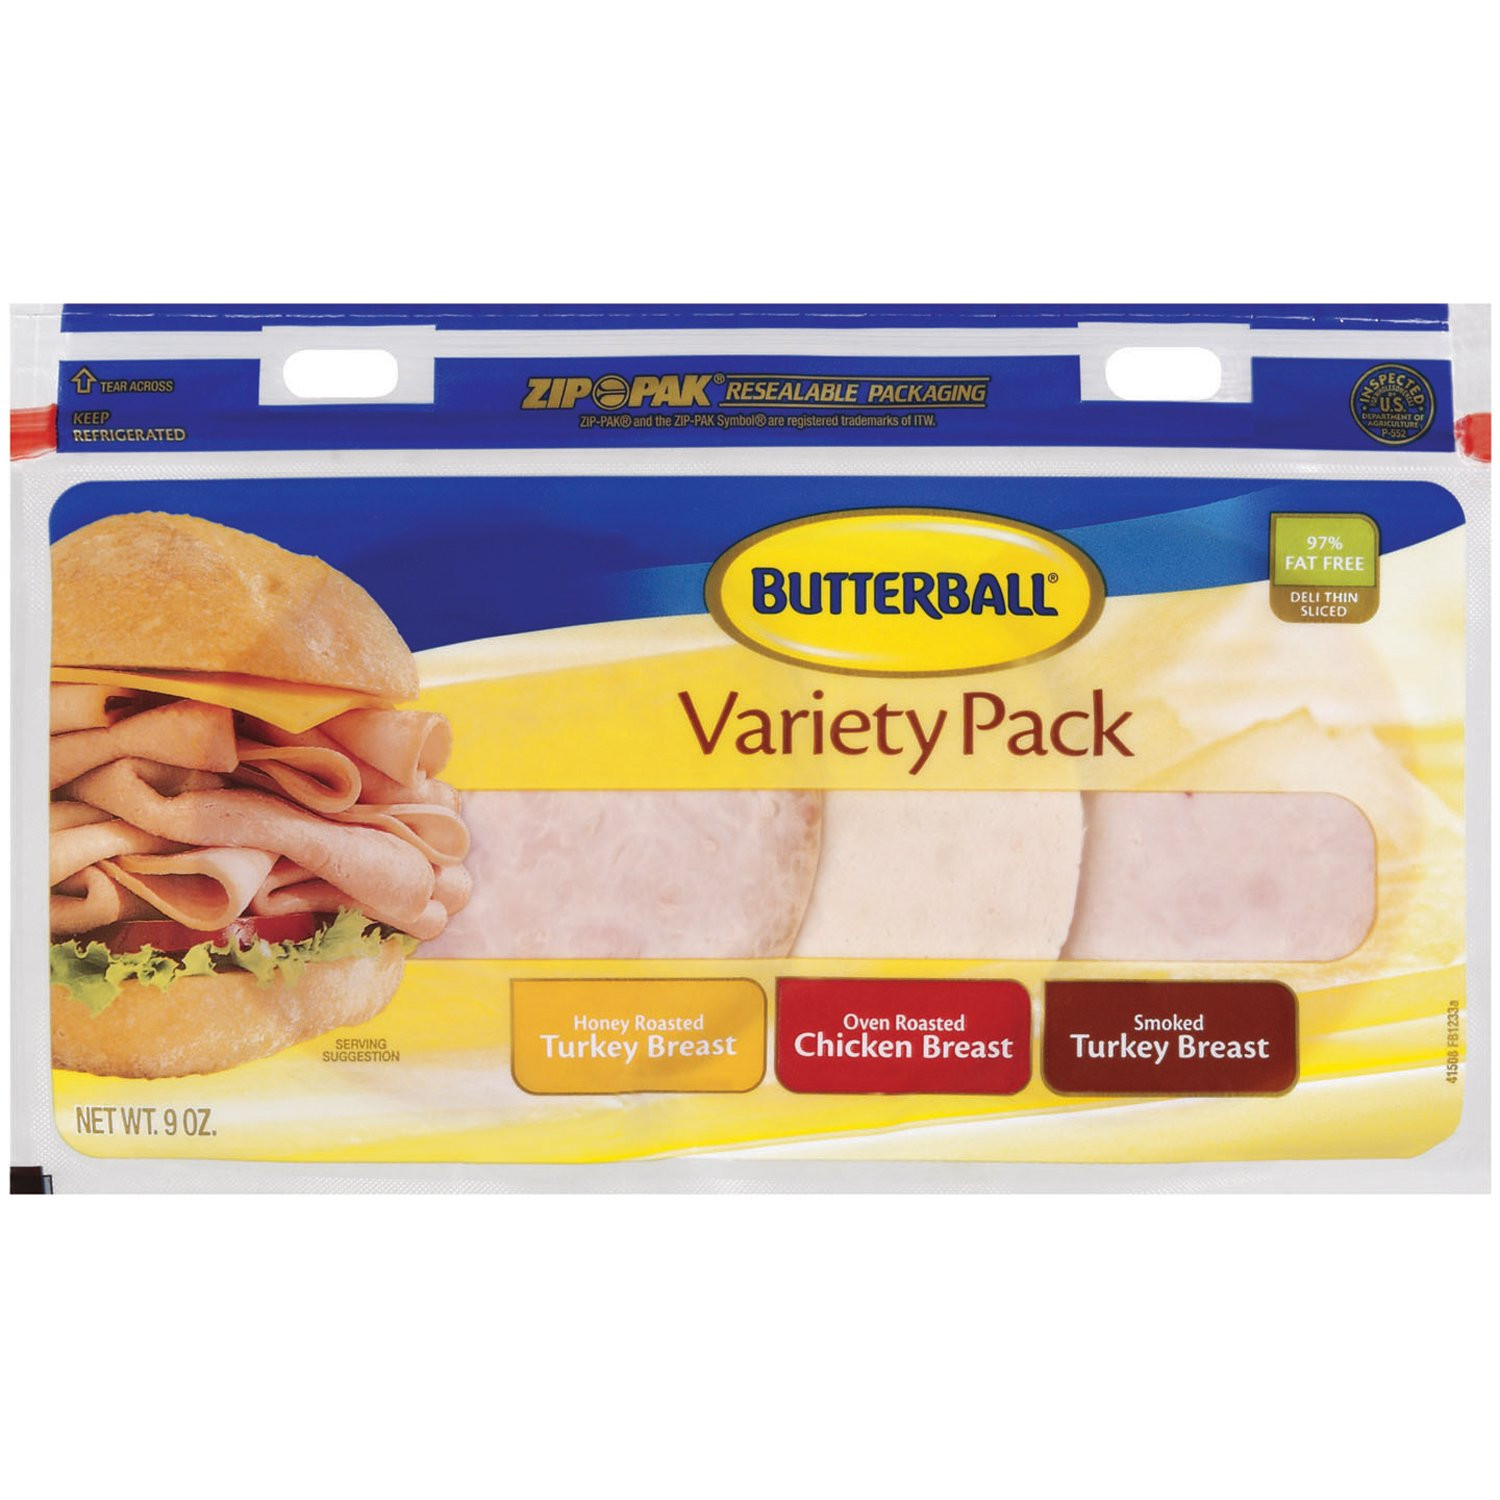 Pre Cooked Thanksgiving Dinner Walmart  Butterball Every Day Original Fully Cooked Turkey Bacon 3